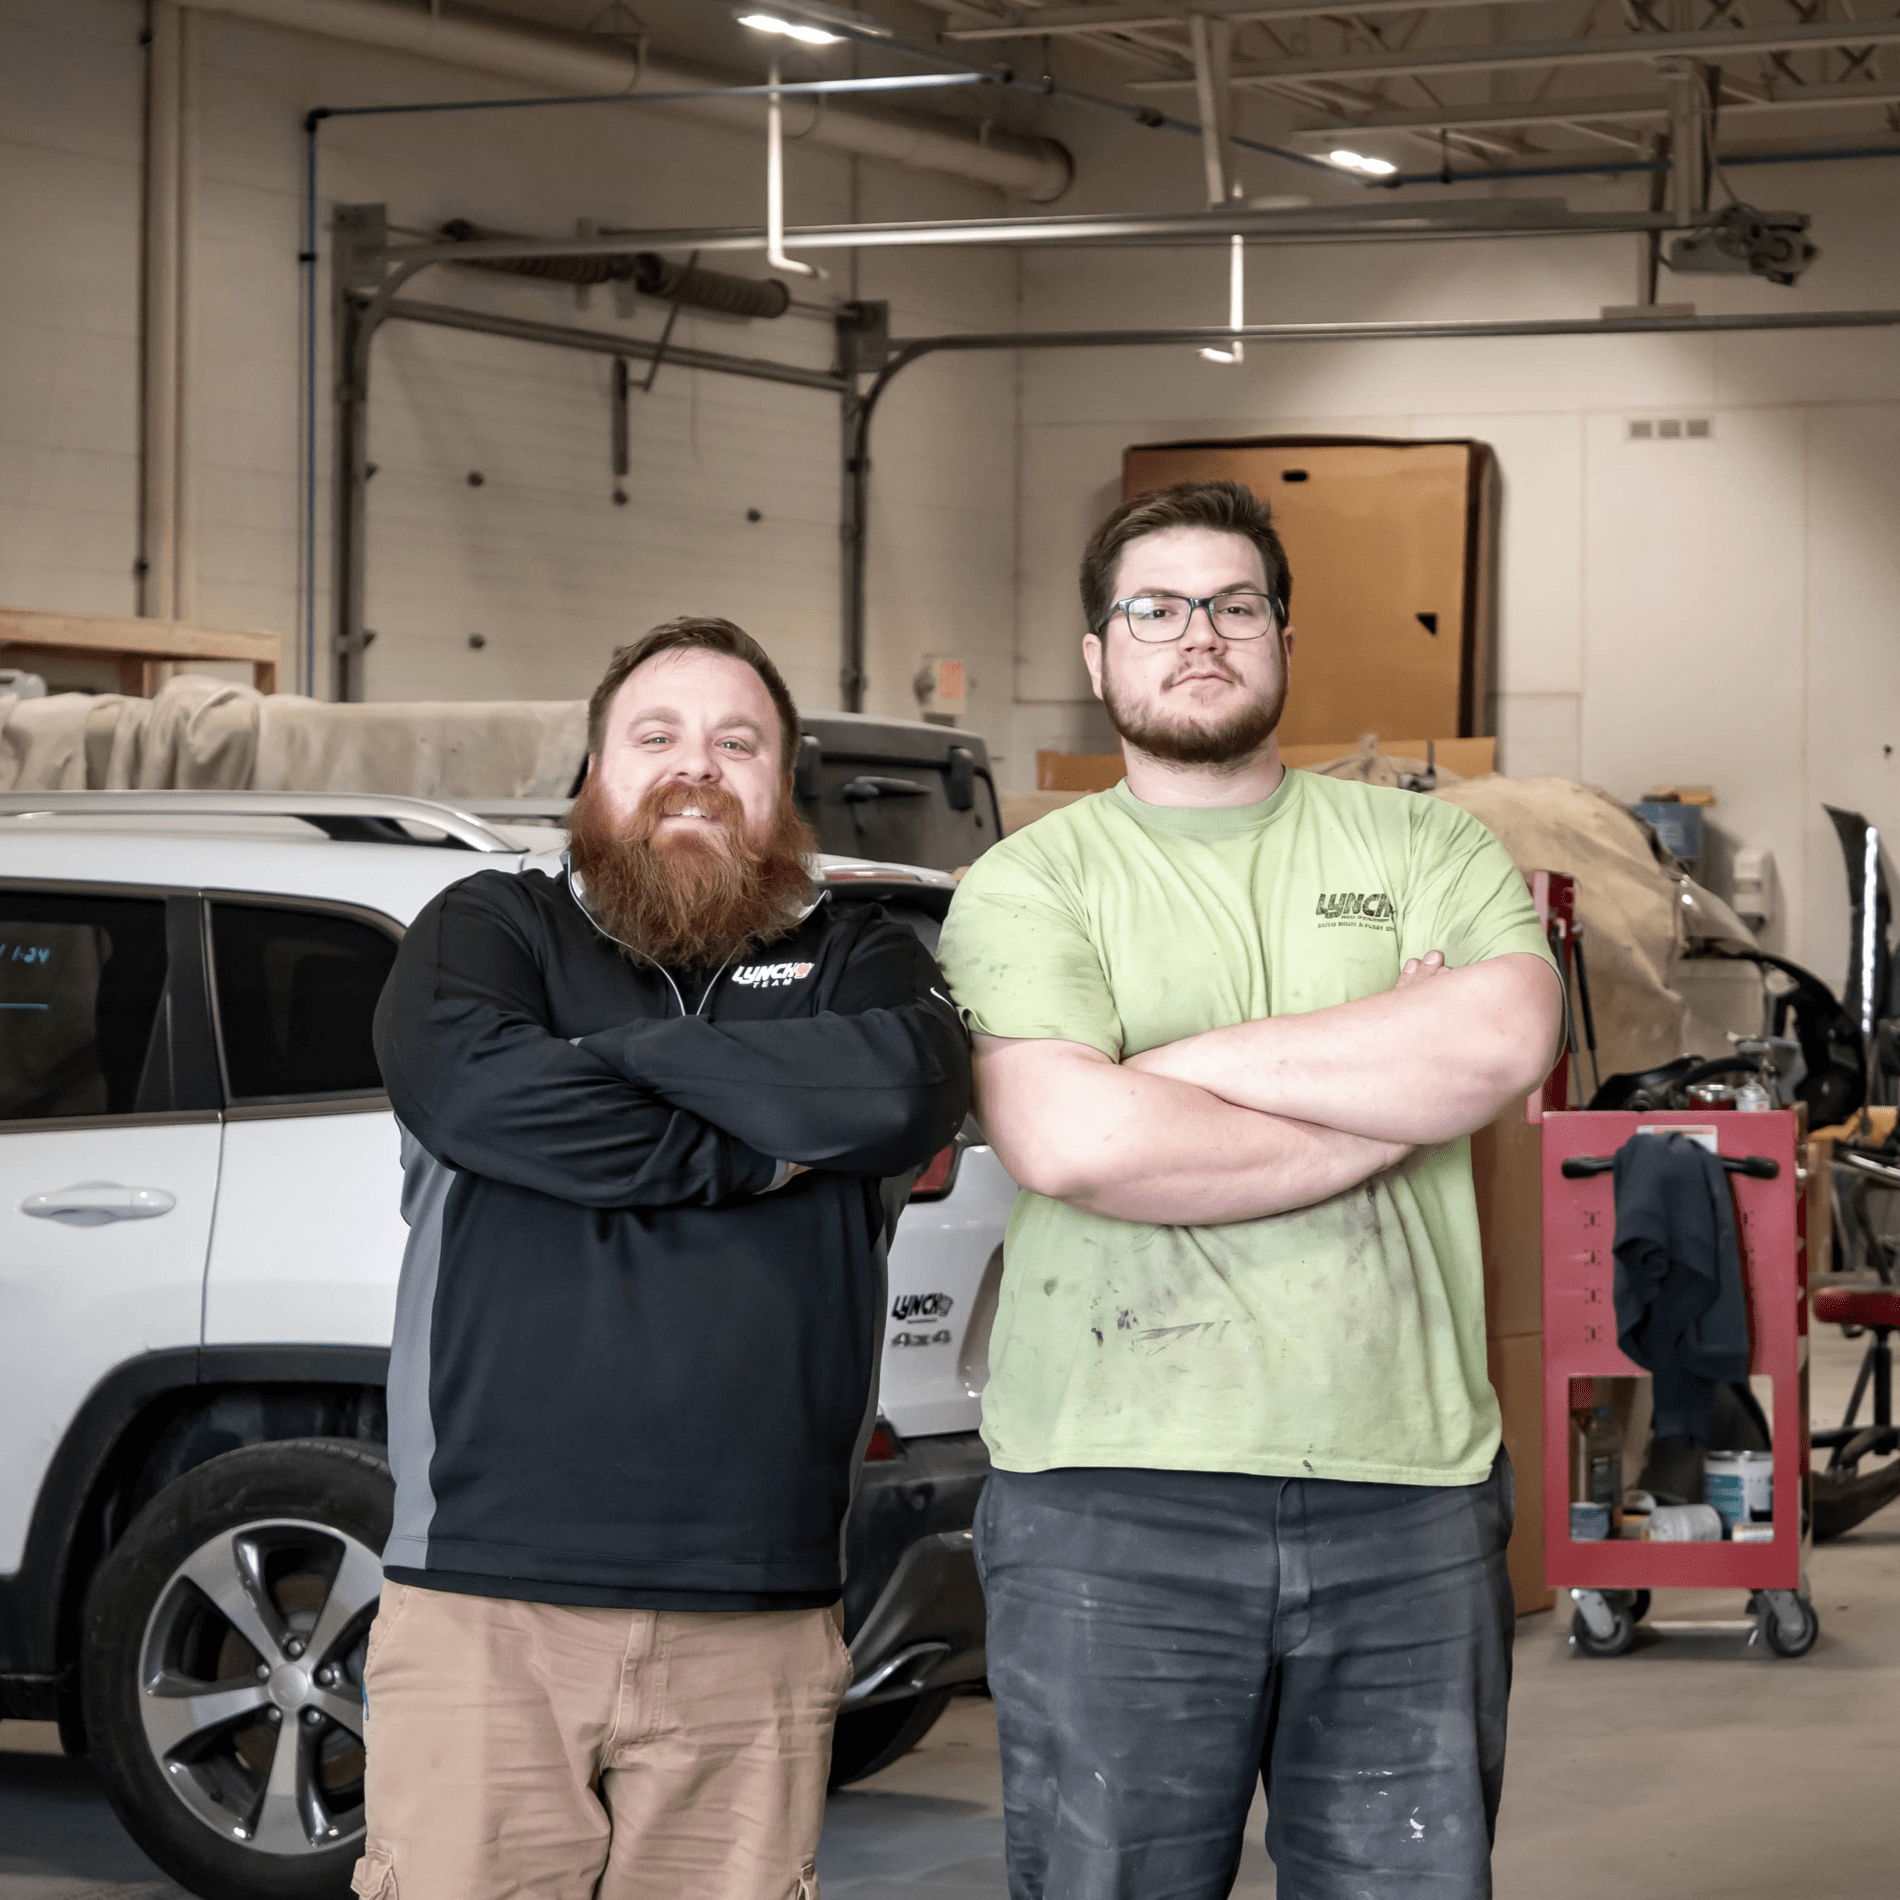 Two technicians stand with folded arms in service garage